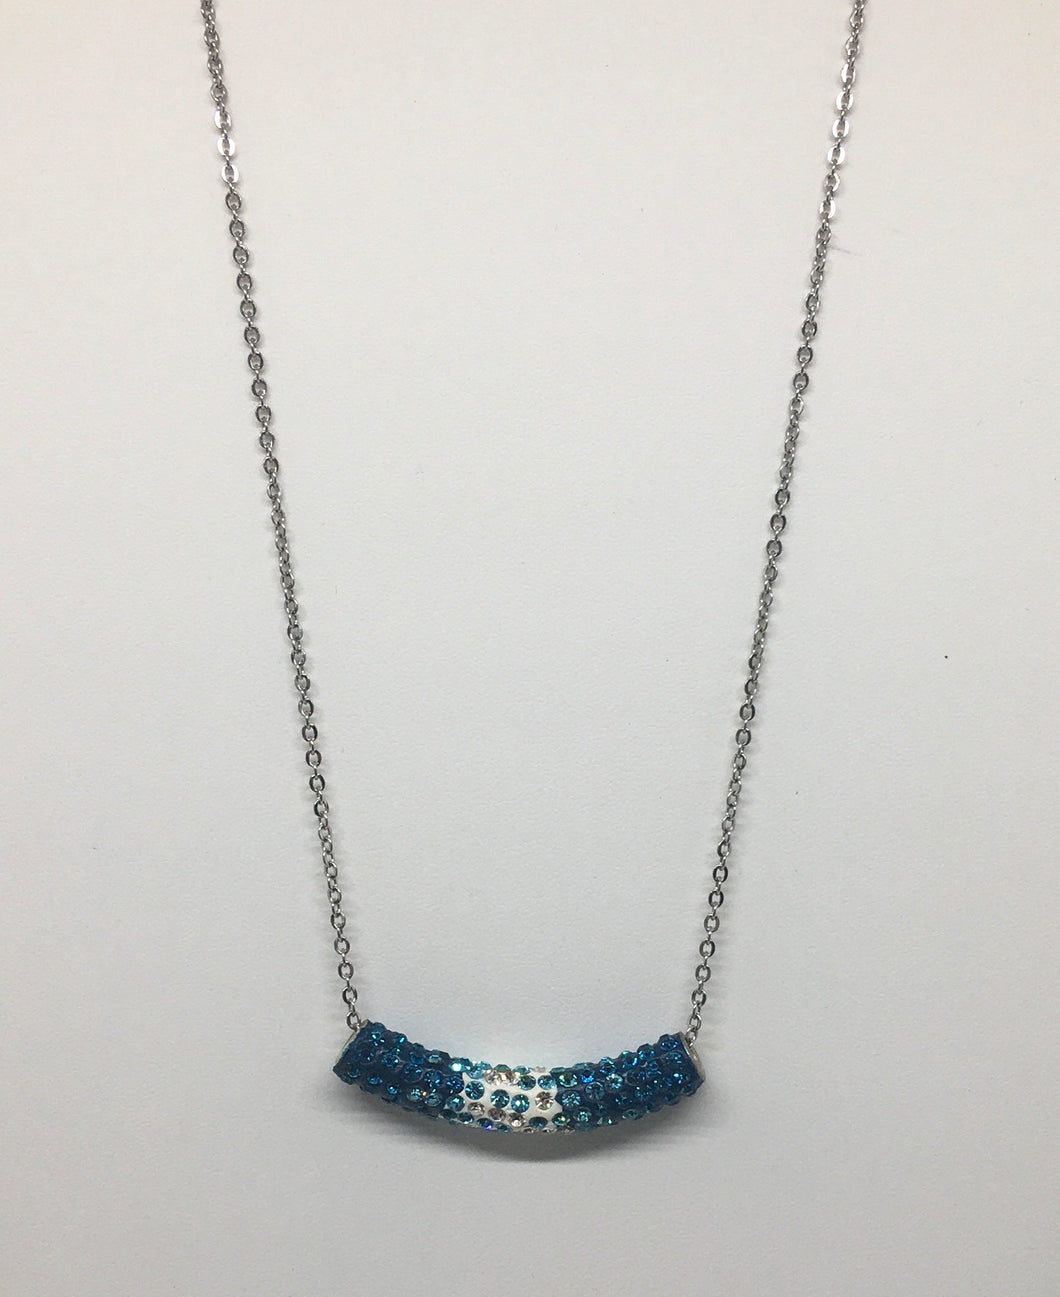 Sale! Blue and White Tube Necklace